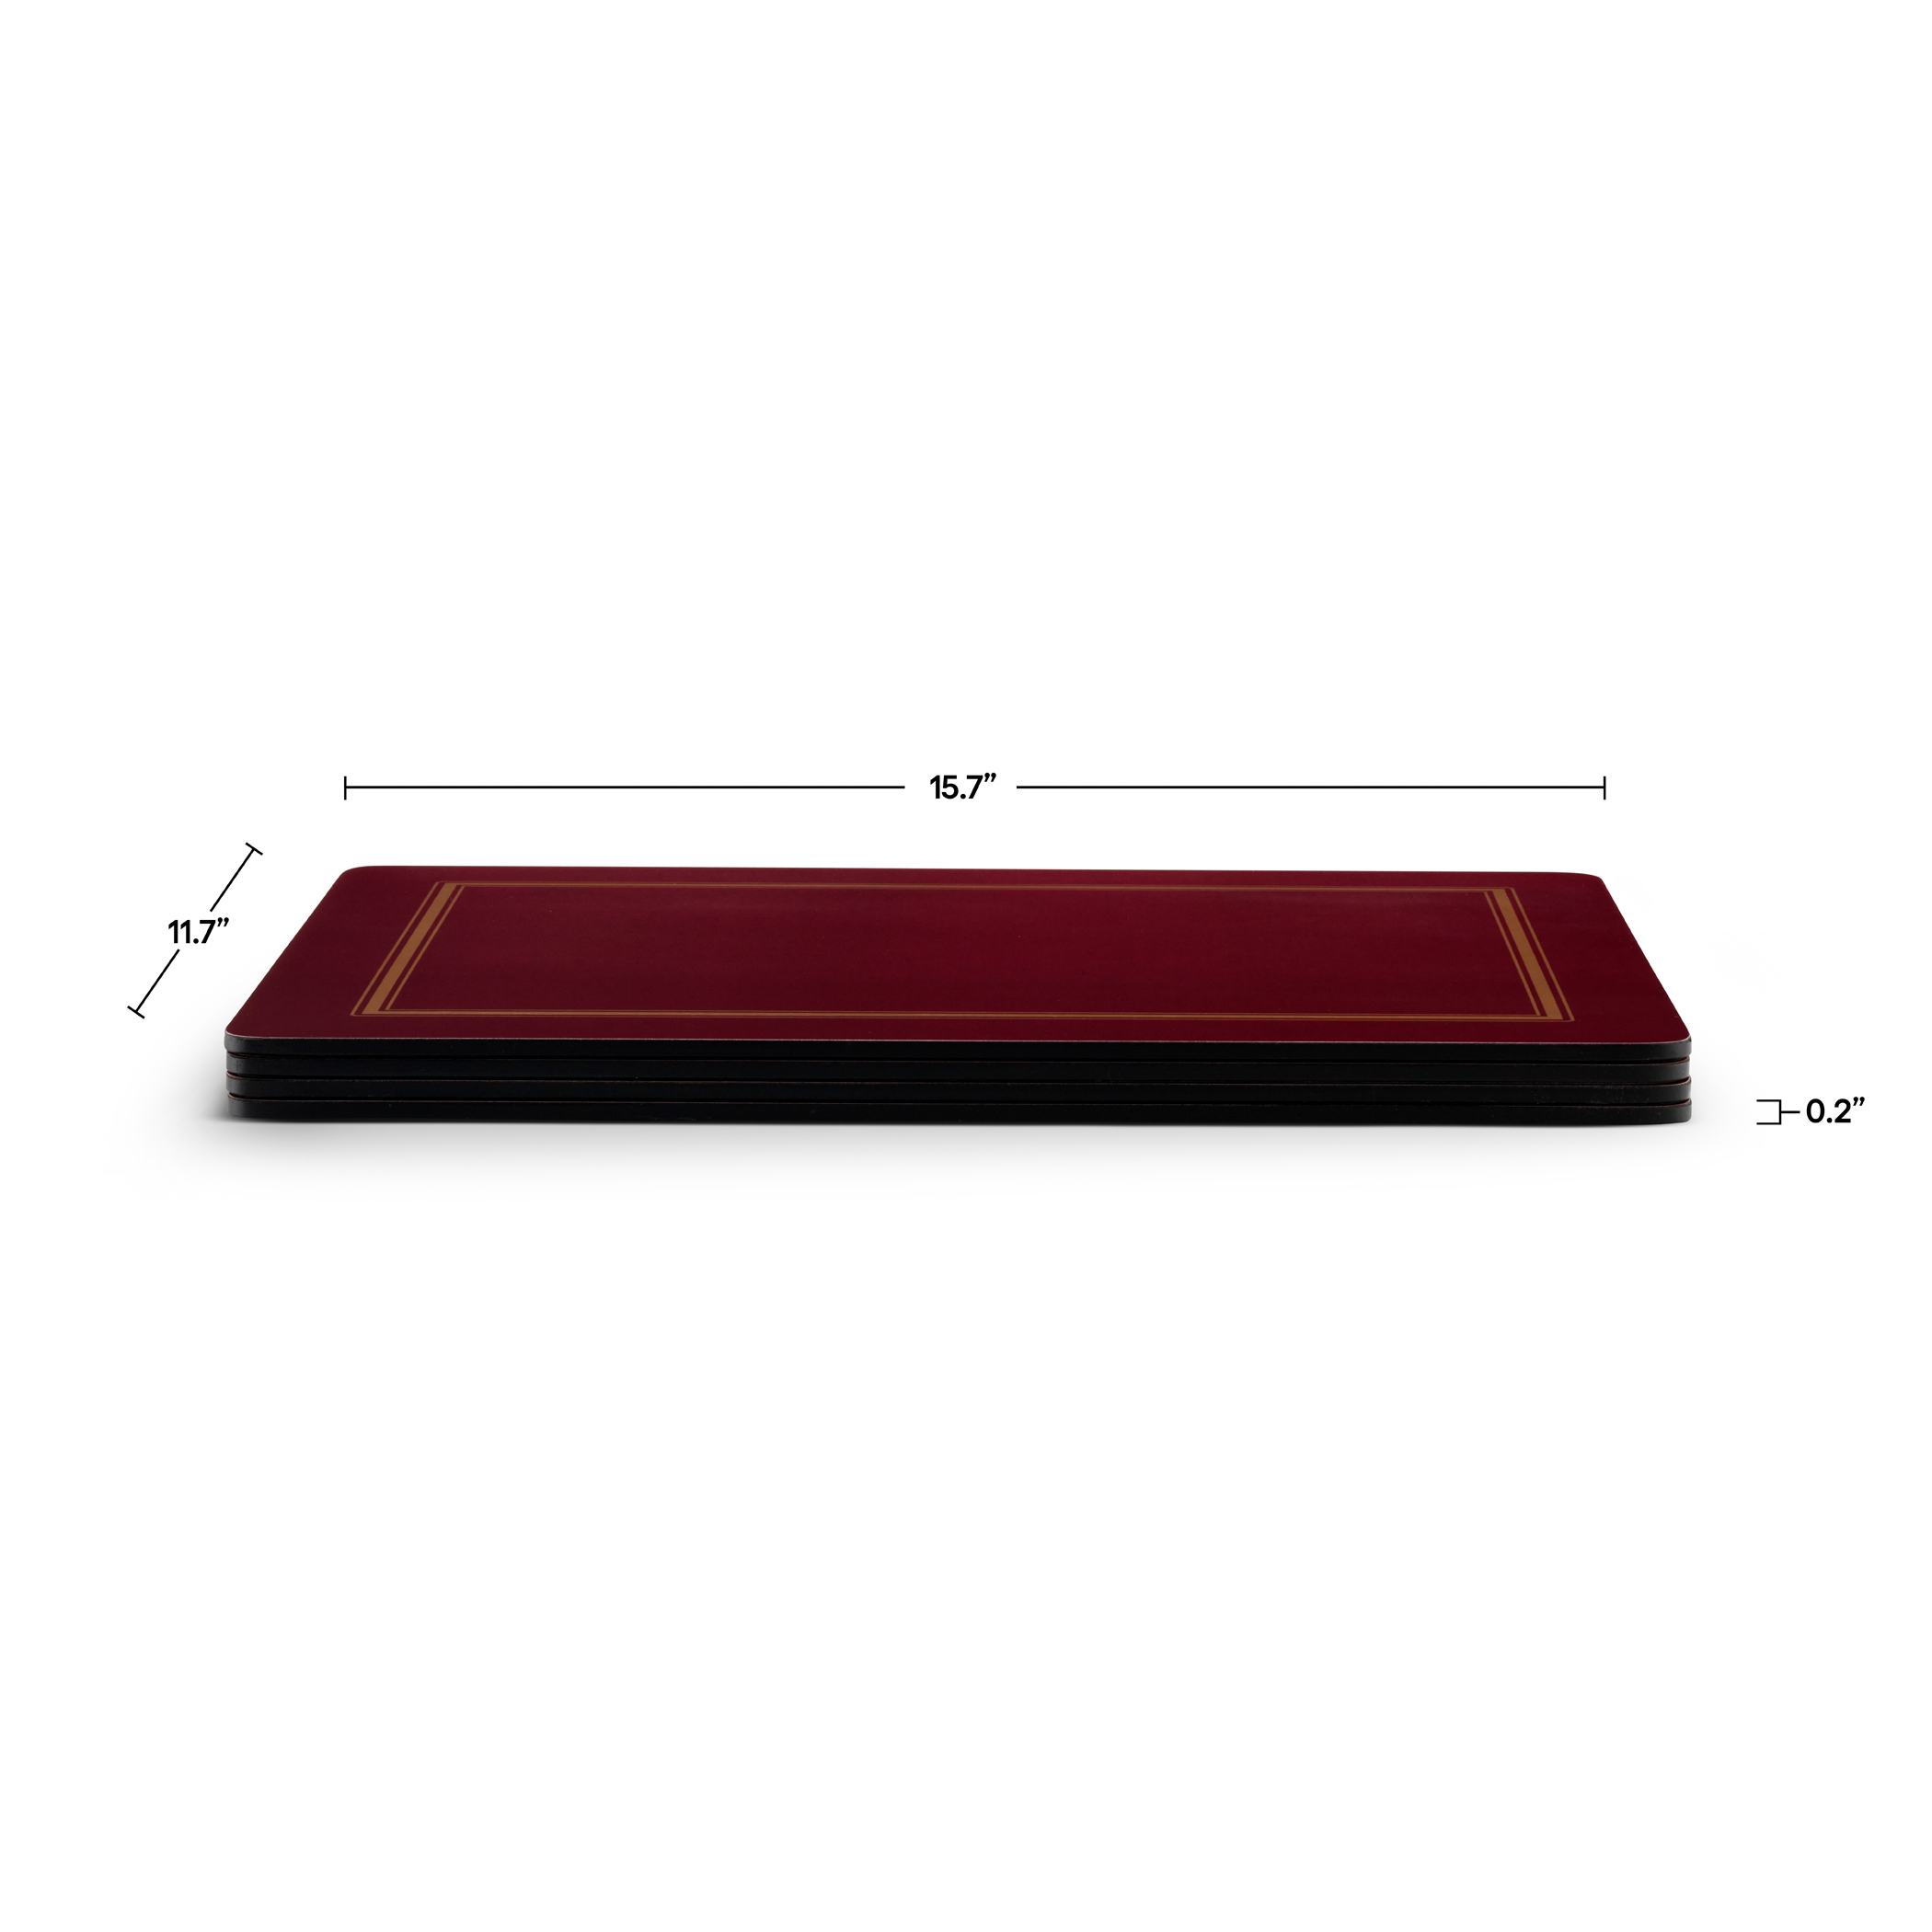 Pimpernel Classic Burgundy Placemats Set of 4 image number 3